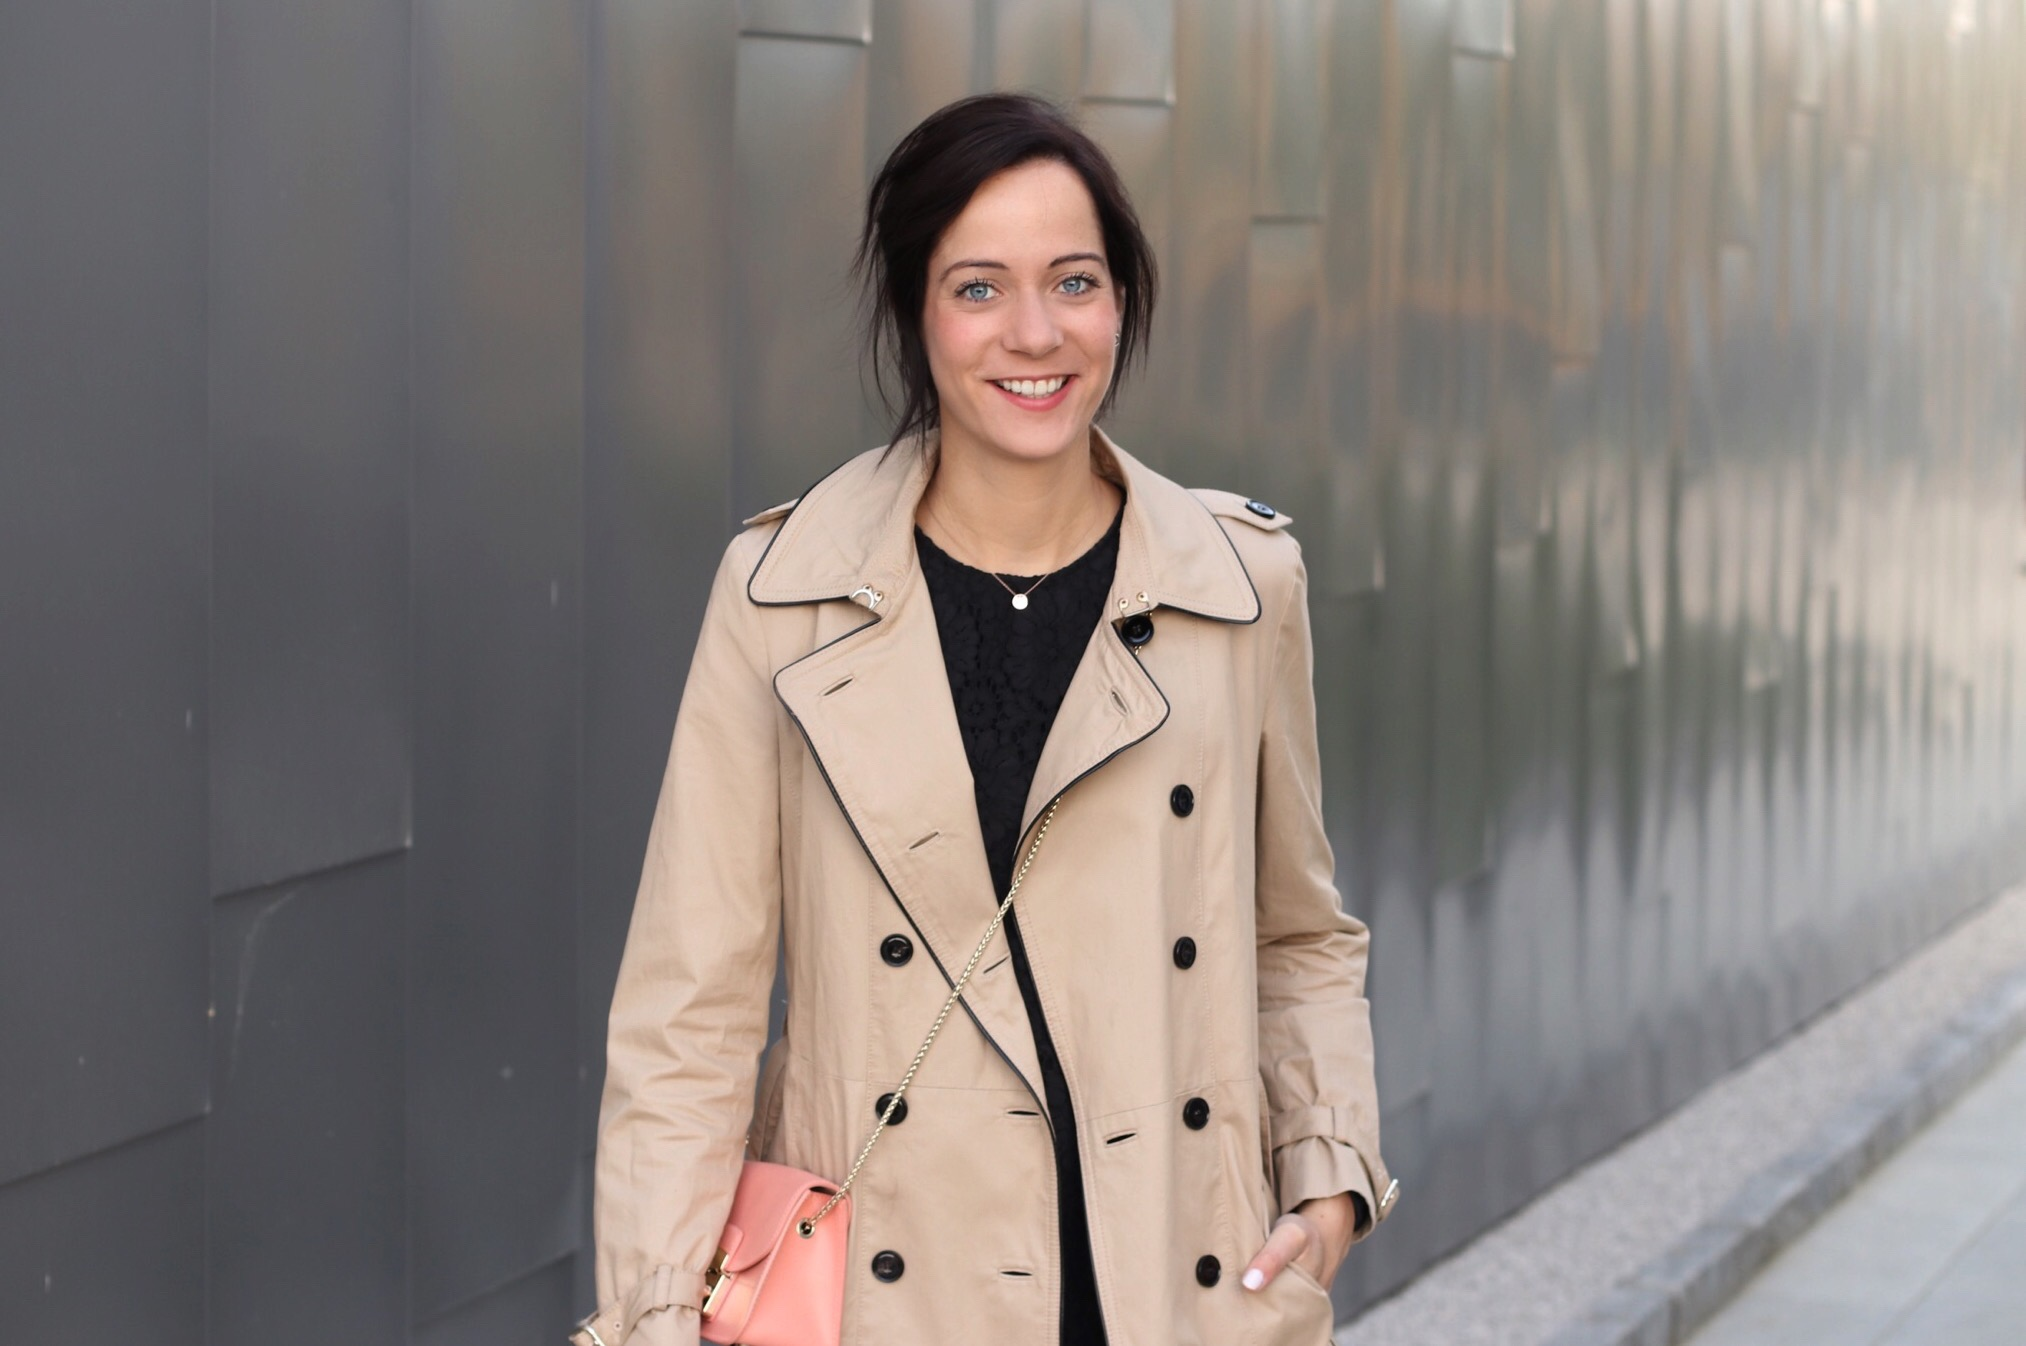 7 Ways To Wear a Trench Coat ThisSpring 7 Ways To Wear a Trench Coat ThisSpring new pictures